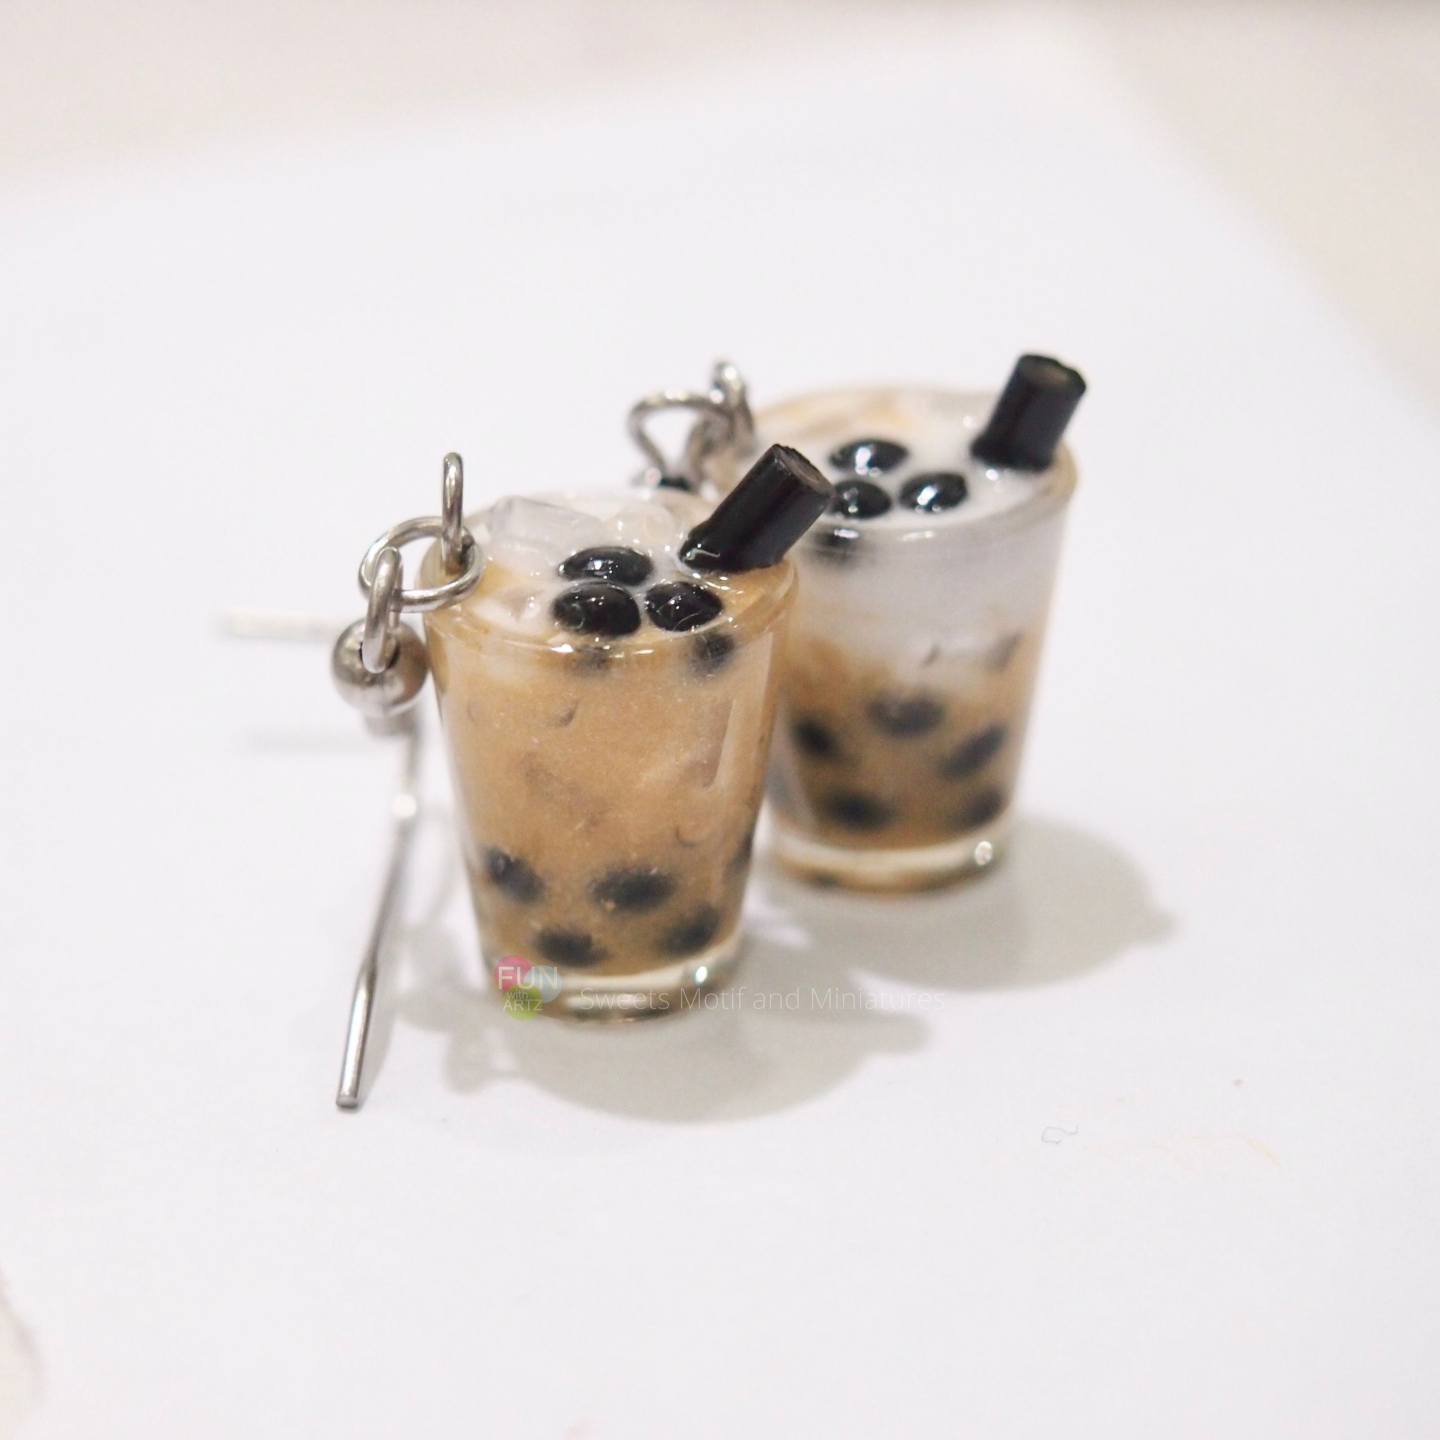 Jewelry-Bubble tea earrings / Boba tea earrings (No cover)